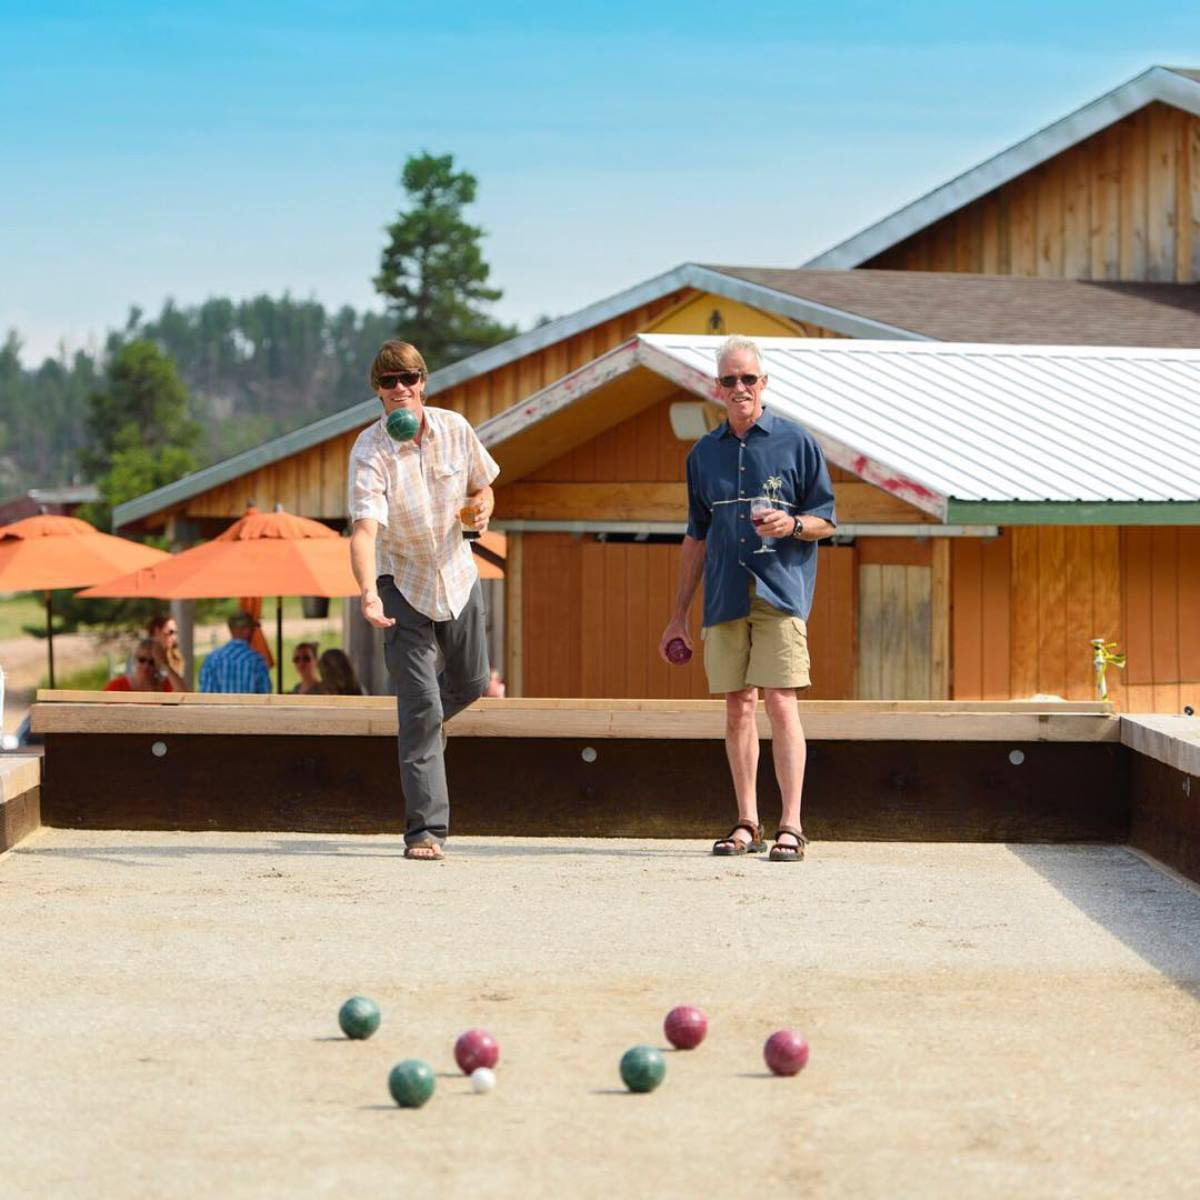 Two men enjoying a ball toss game and wine at Miner Brewing